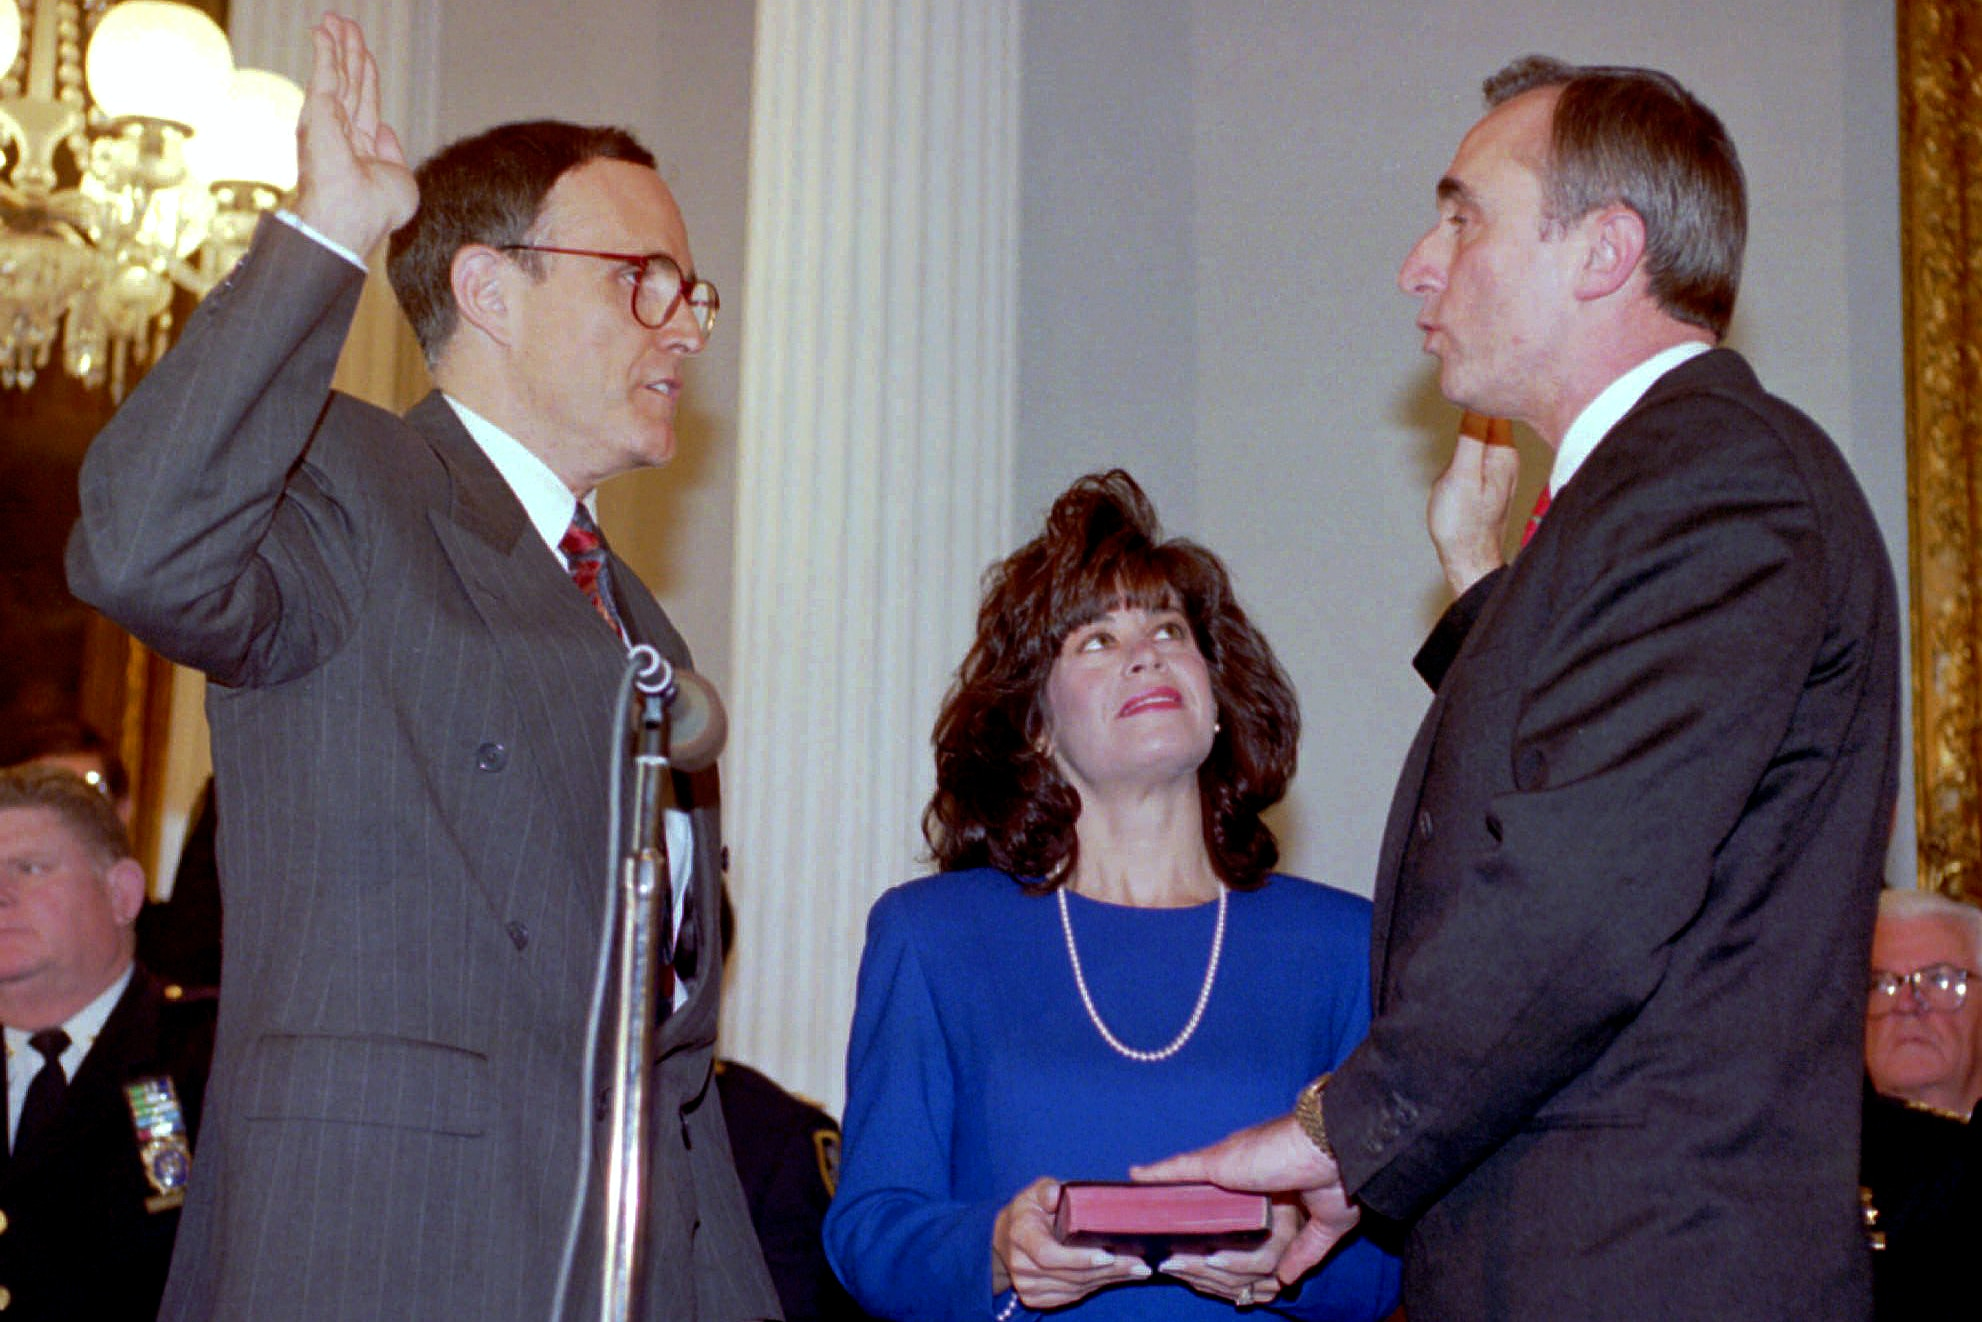 New York City Mayor Rudolph Giuliani, left, adminsters the oath of office to Police Commissioner William J. Bratton at New York City Hall ceremonies Tuesday, Jan. 11, 1994. Bratton's wife, Cheryl Fiandaca, holds the Bible for the former Boston police commissioner. (AP Photo/Richard Drew)